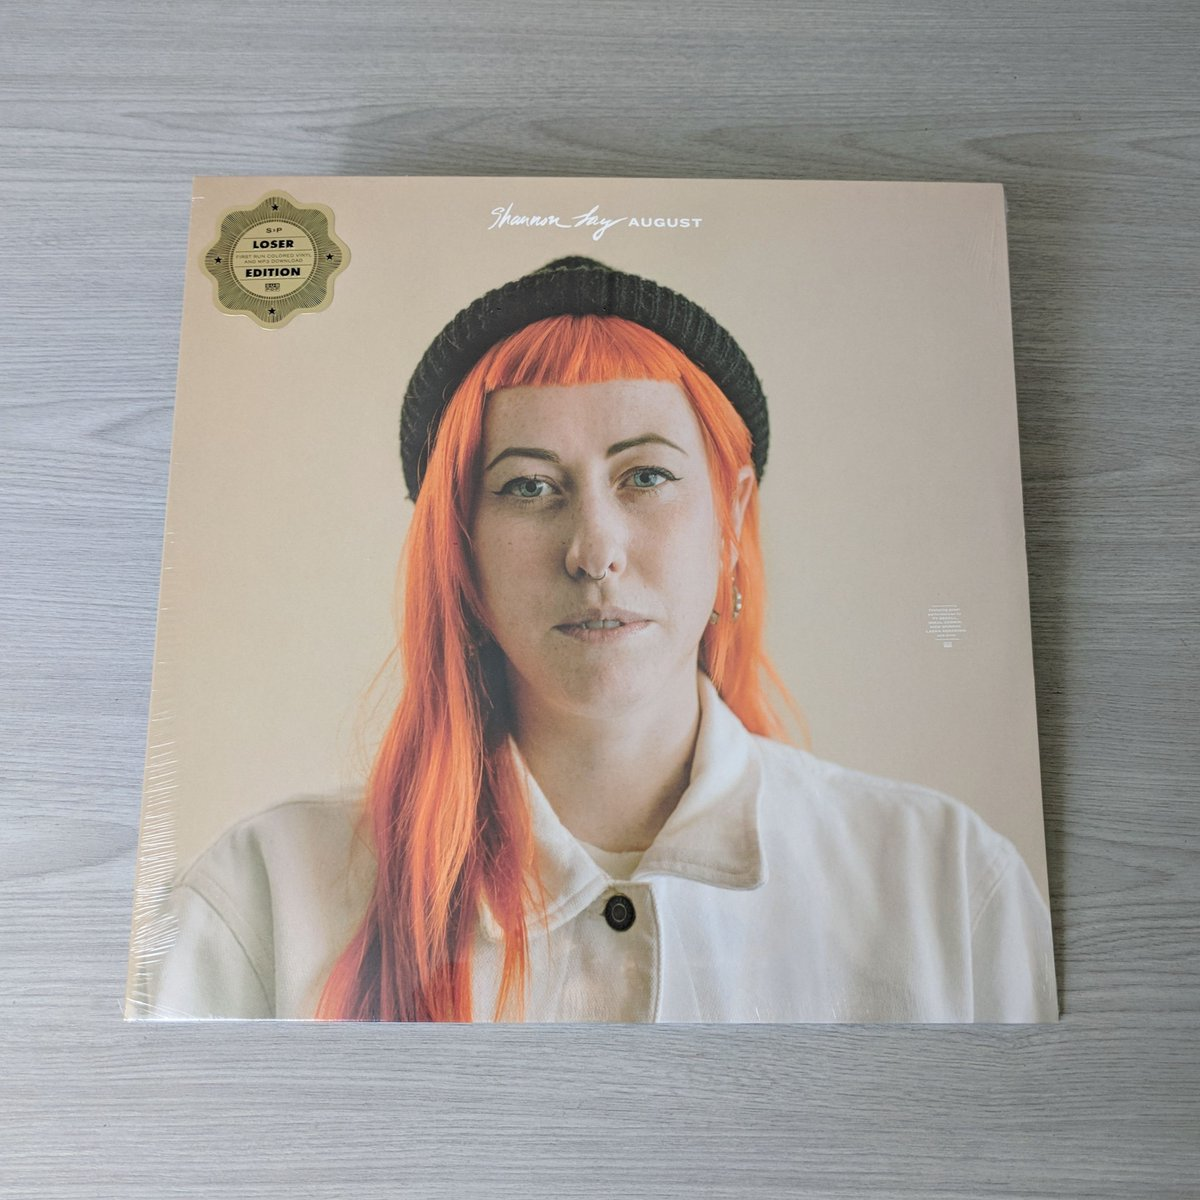 JUST IN: August by Shannon Lay Shannon Lays latest record of blissful folk pop has arrived! Its been recorded with Ty Segall, and features his mate Mikal Cronin on sax. On limited edition sun yellow coloured vinyl: normanrecords.com/records/176888… @subpop